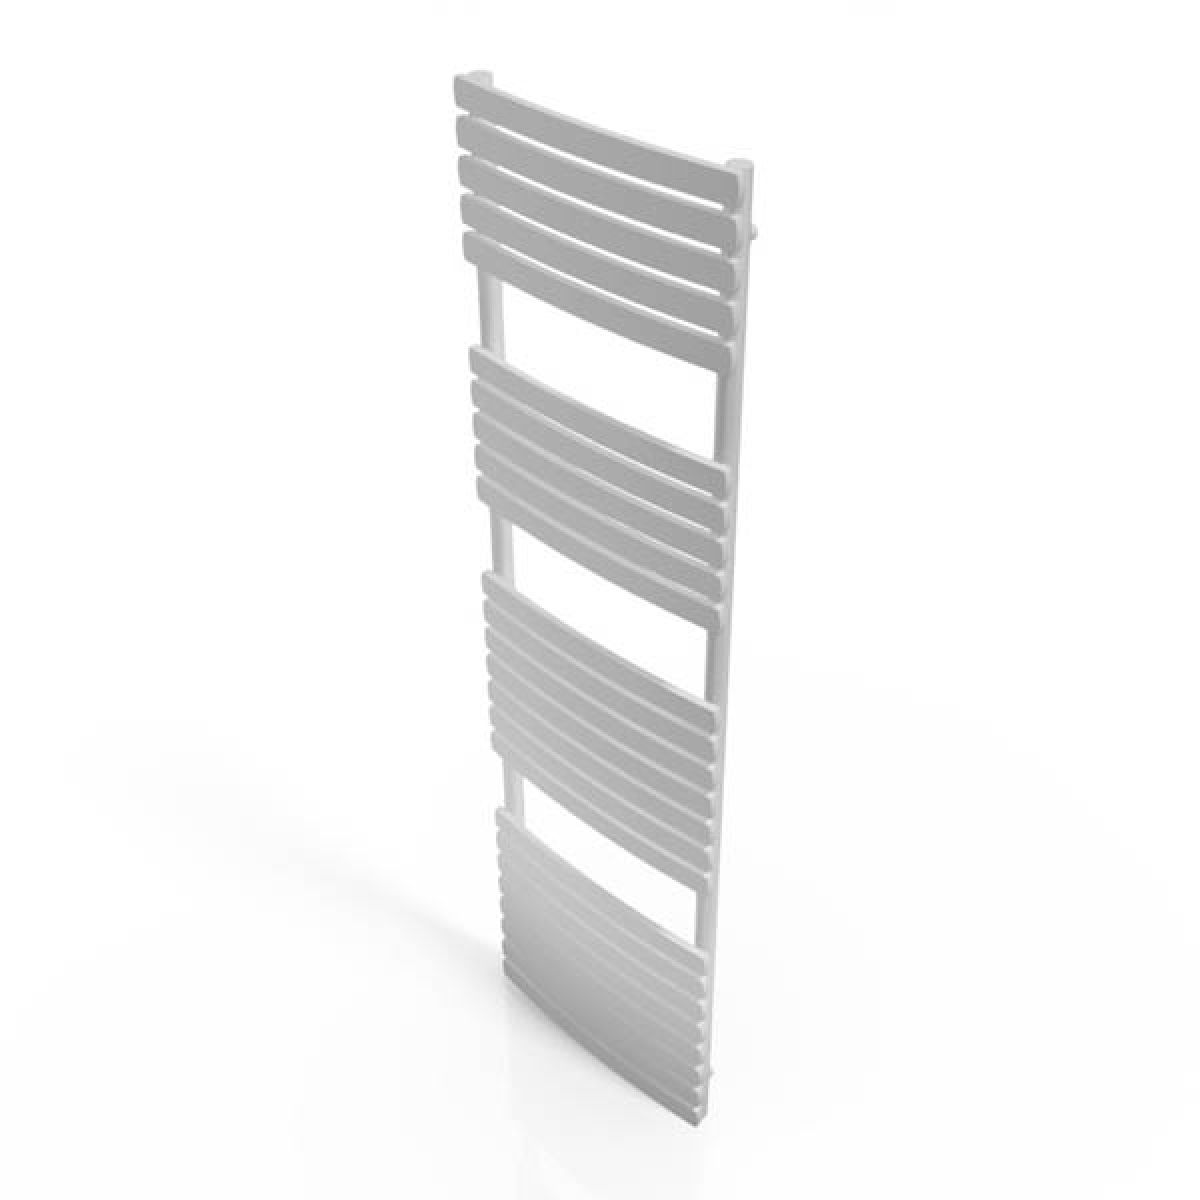 Cassellie White Straight Heated Towel Rail With Flat Profile 1700 x 500mm